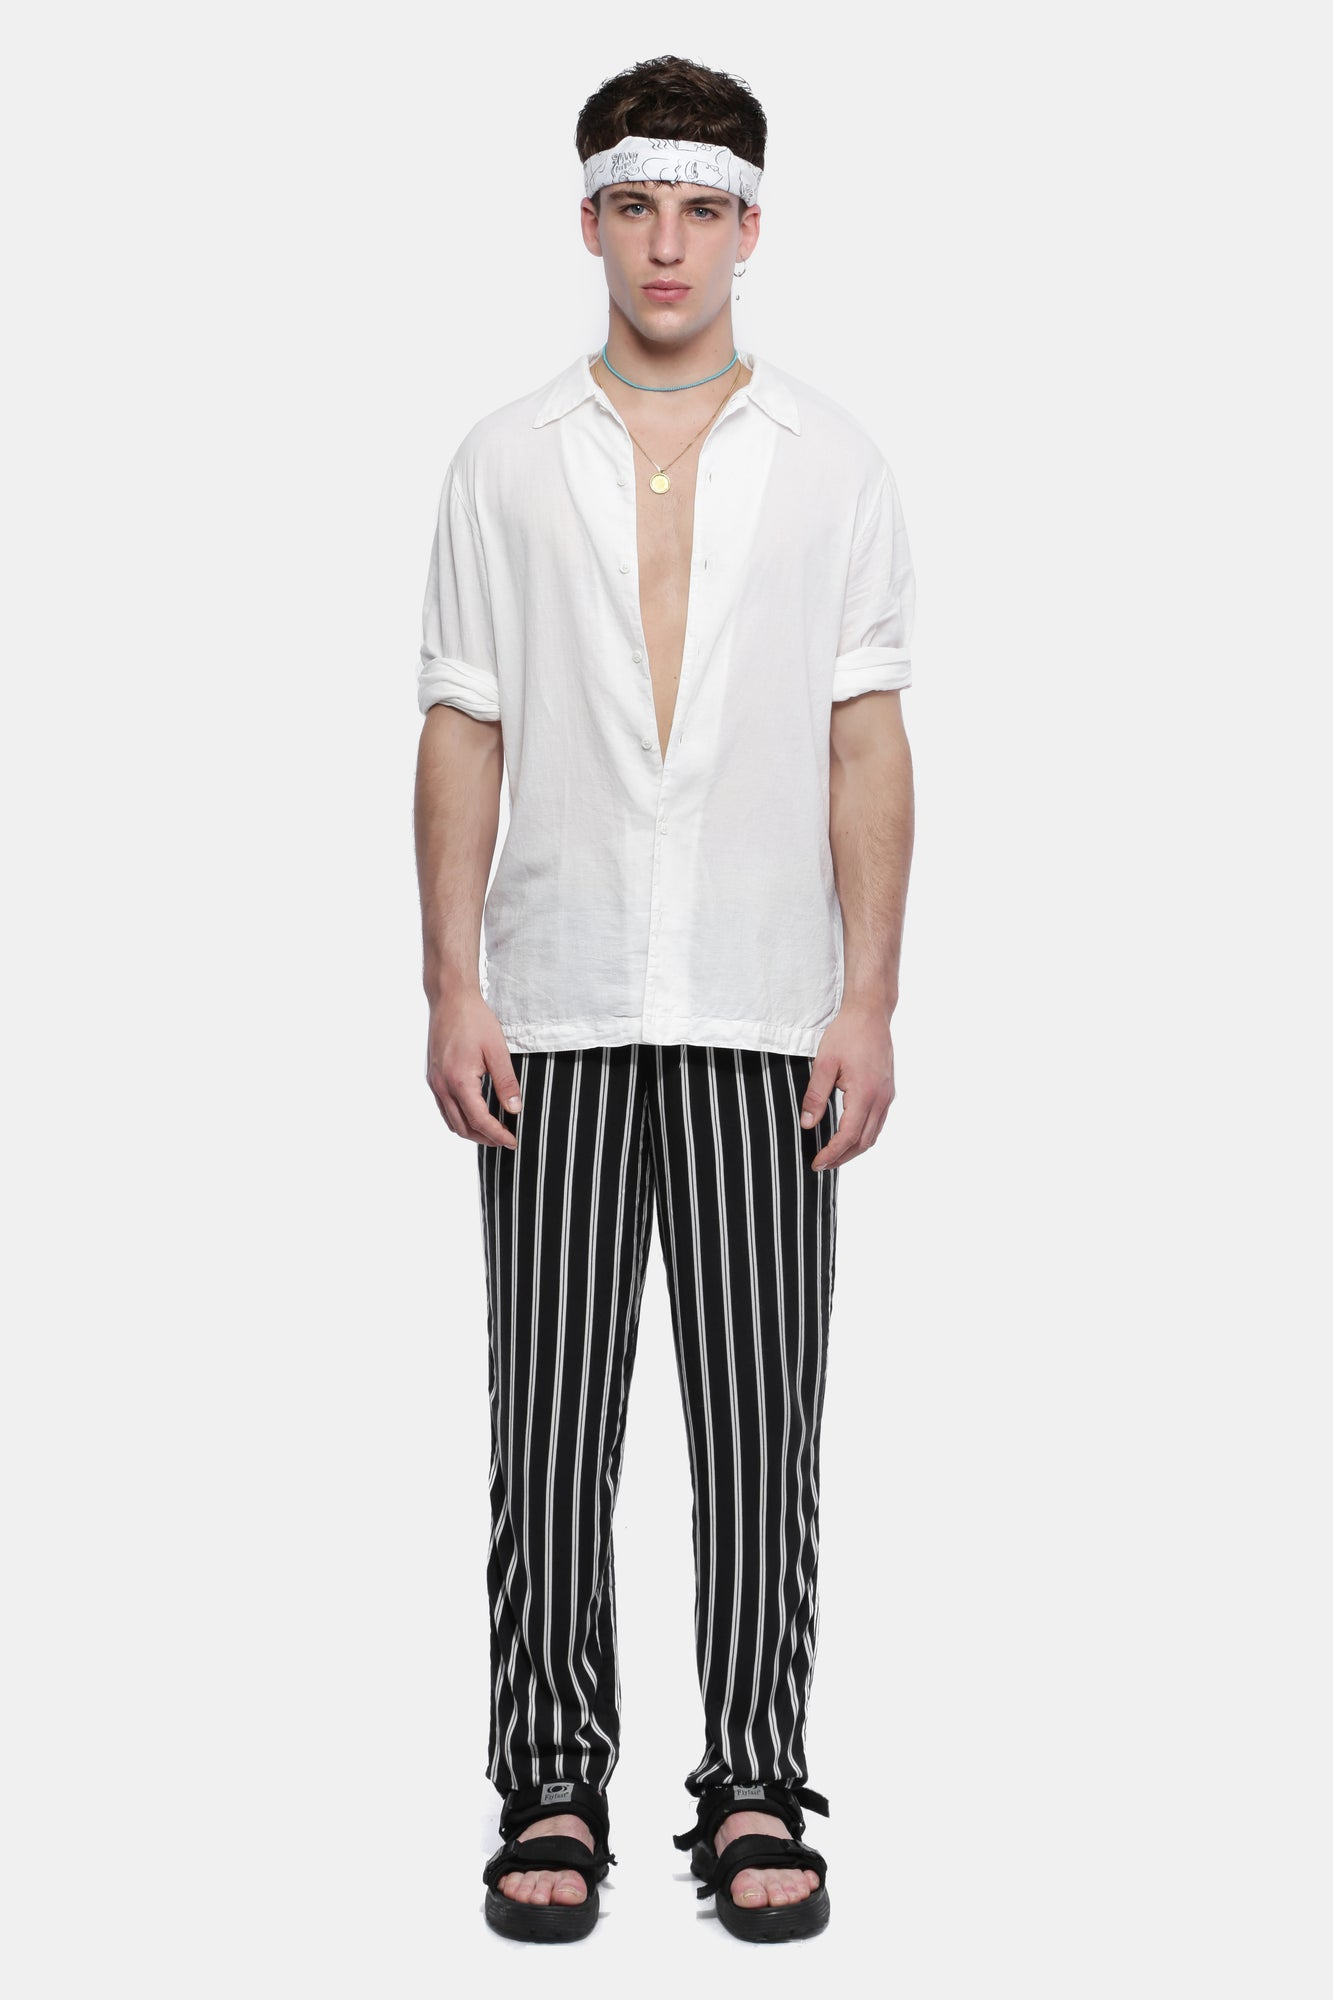 STRIPED PANTS - Esteban Cortazar